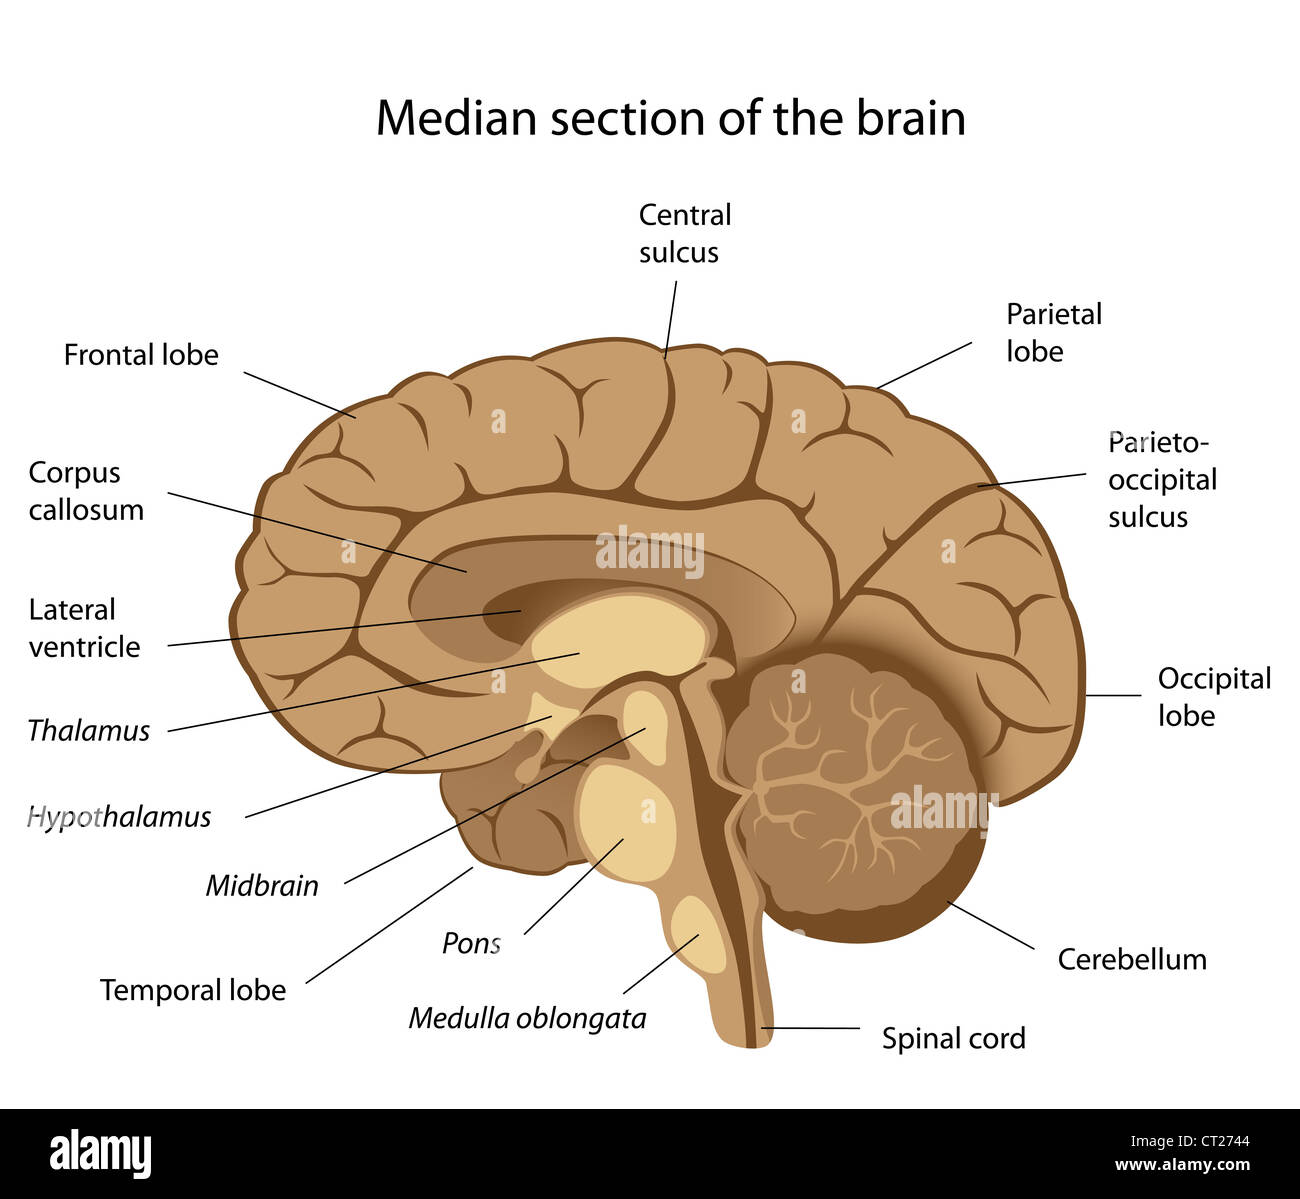 Human brain anatomy - Stock Image